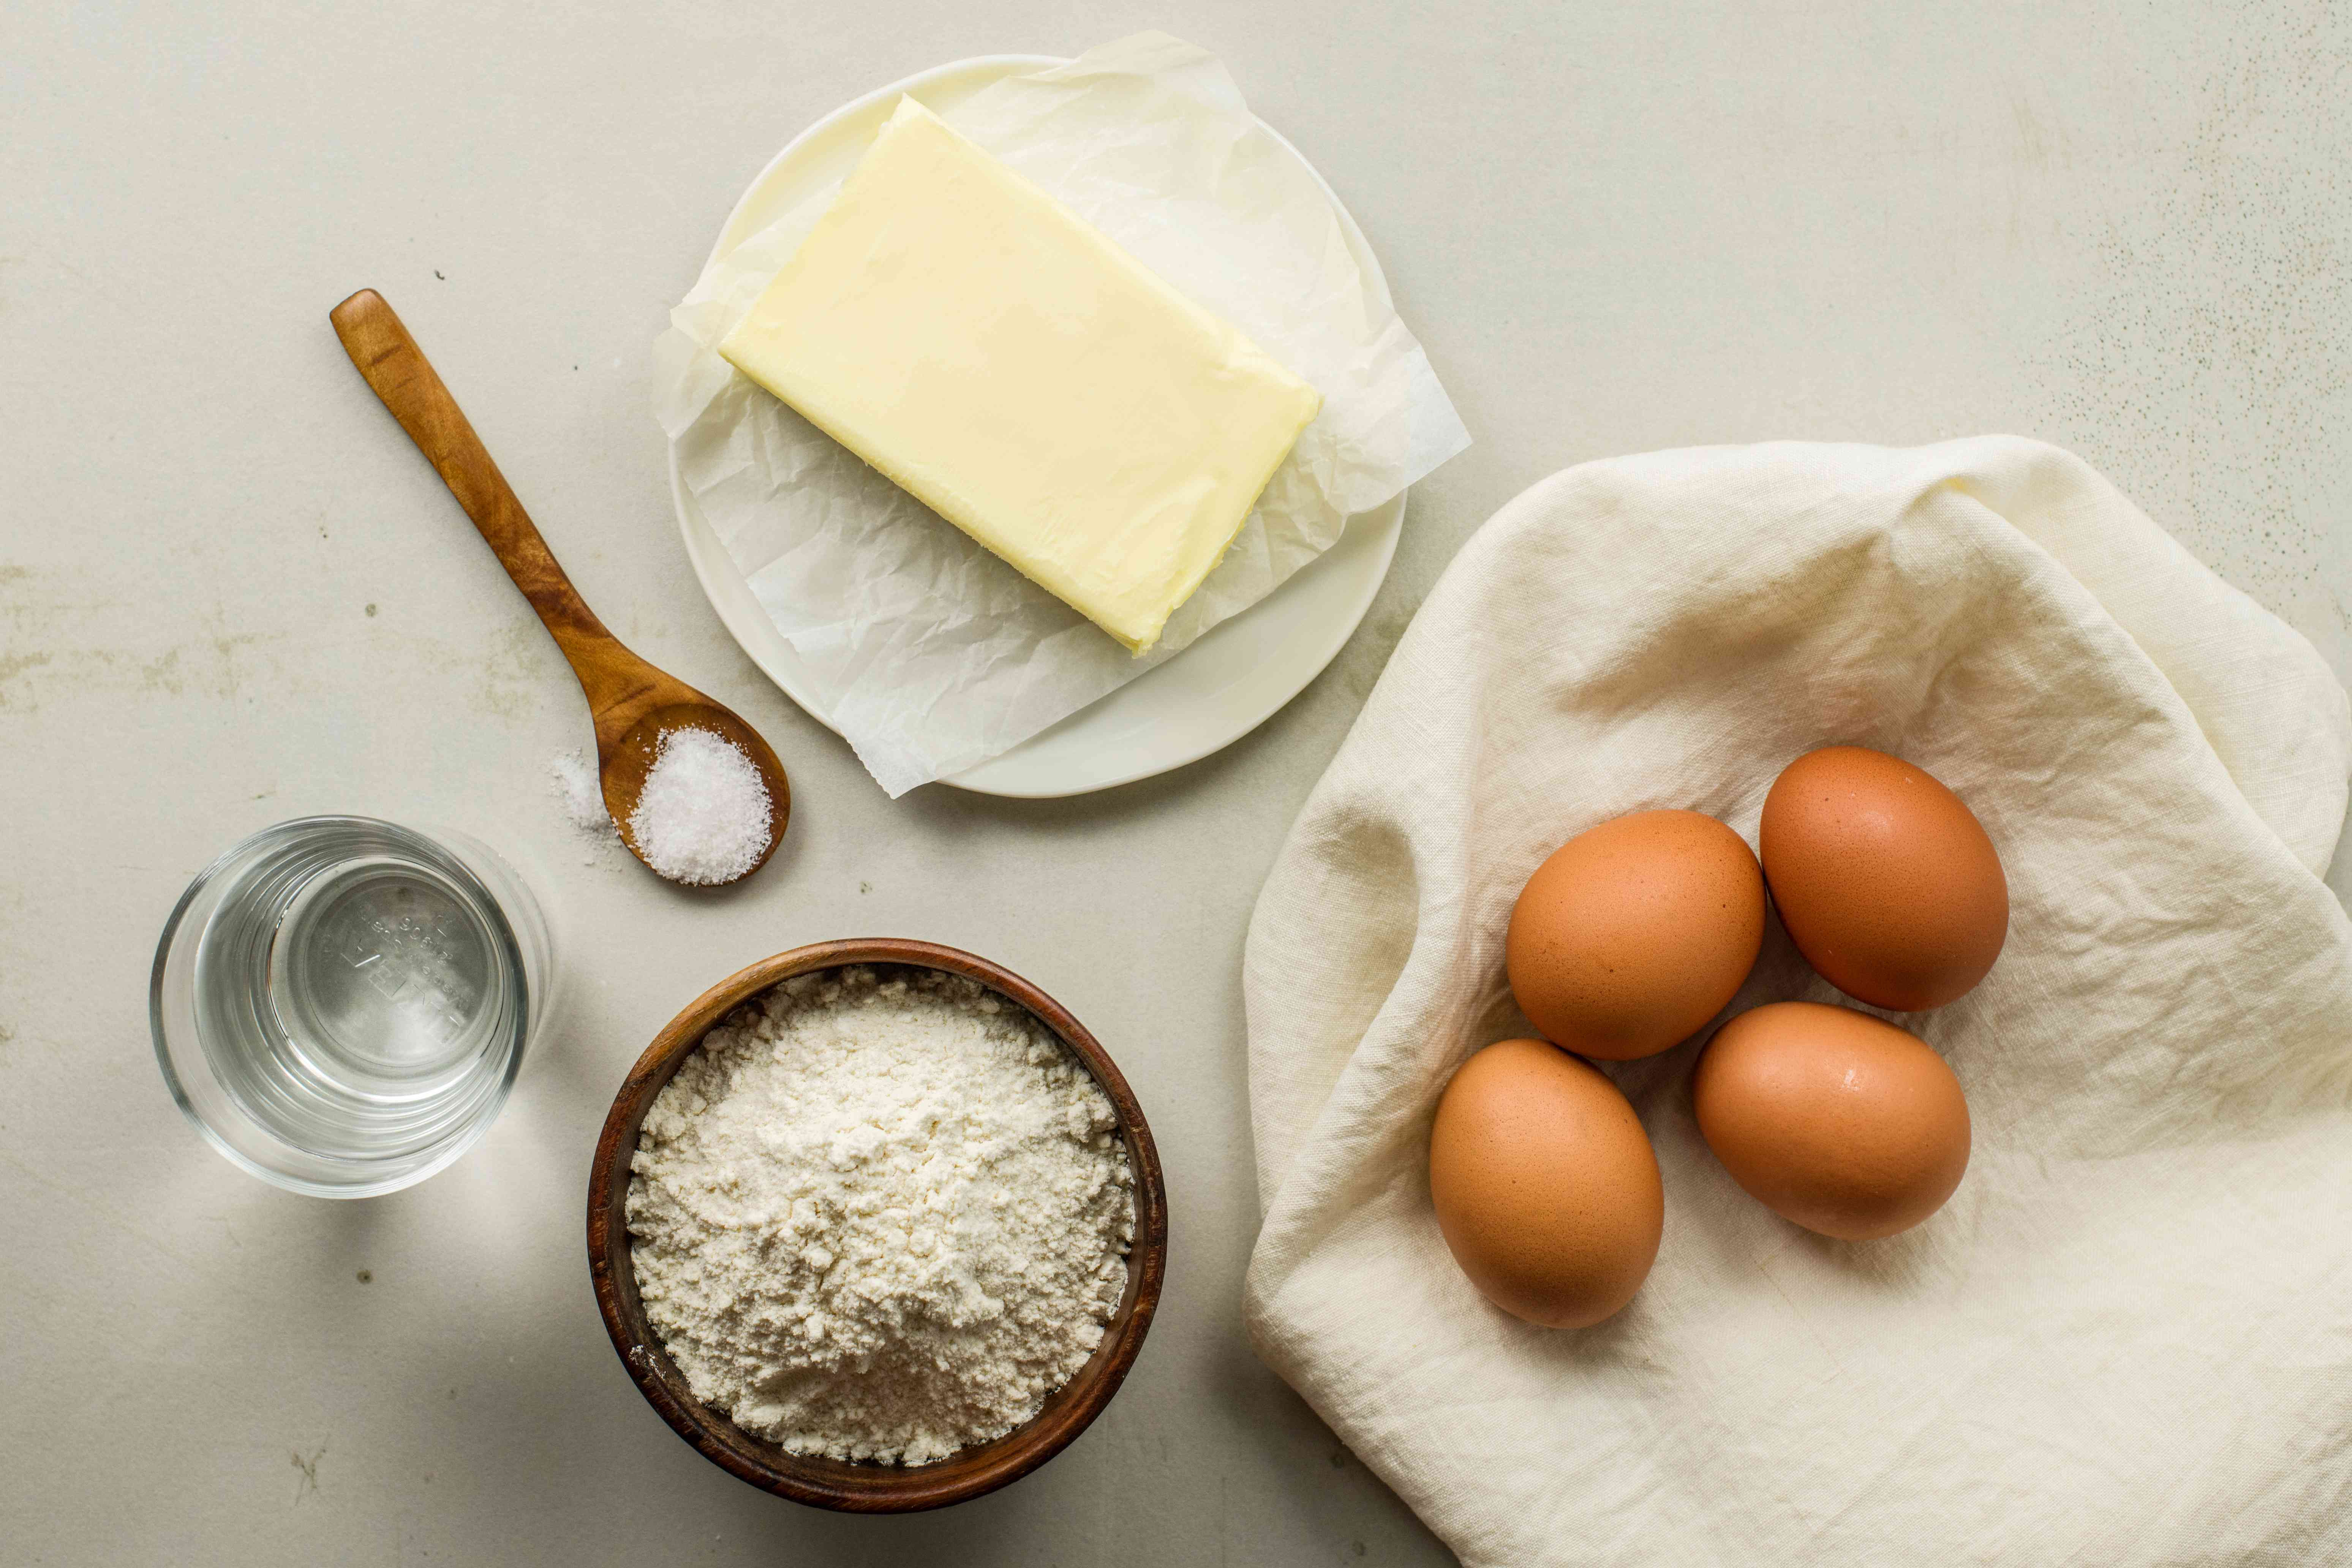 Ingredients for choux dough